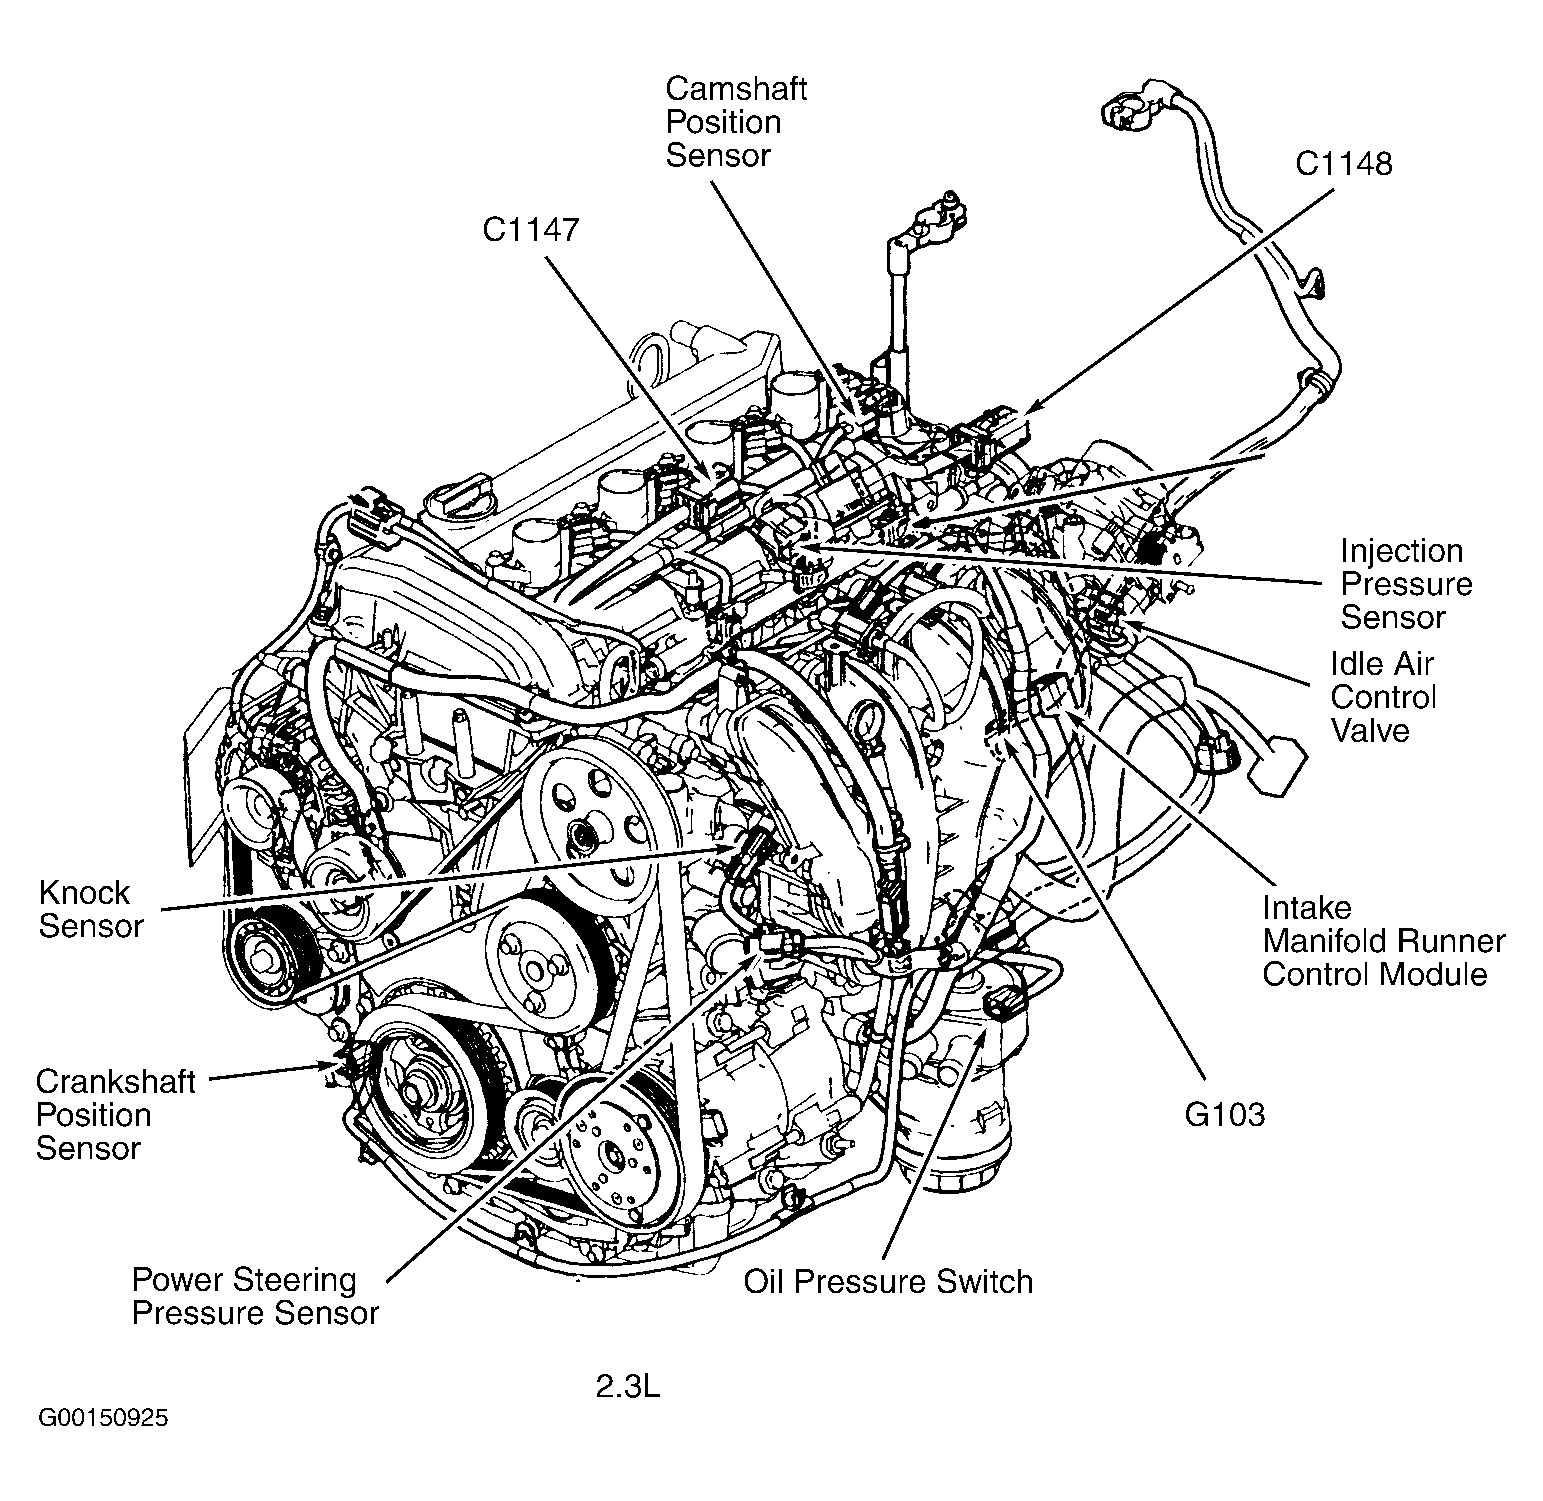 Zetec Engine Diagram ford Focus 2 3 Engine Diagram Full Hd Version Engine Diagram Of Zetec Engine Diagram